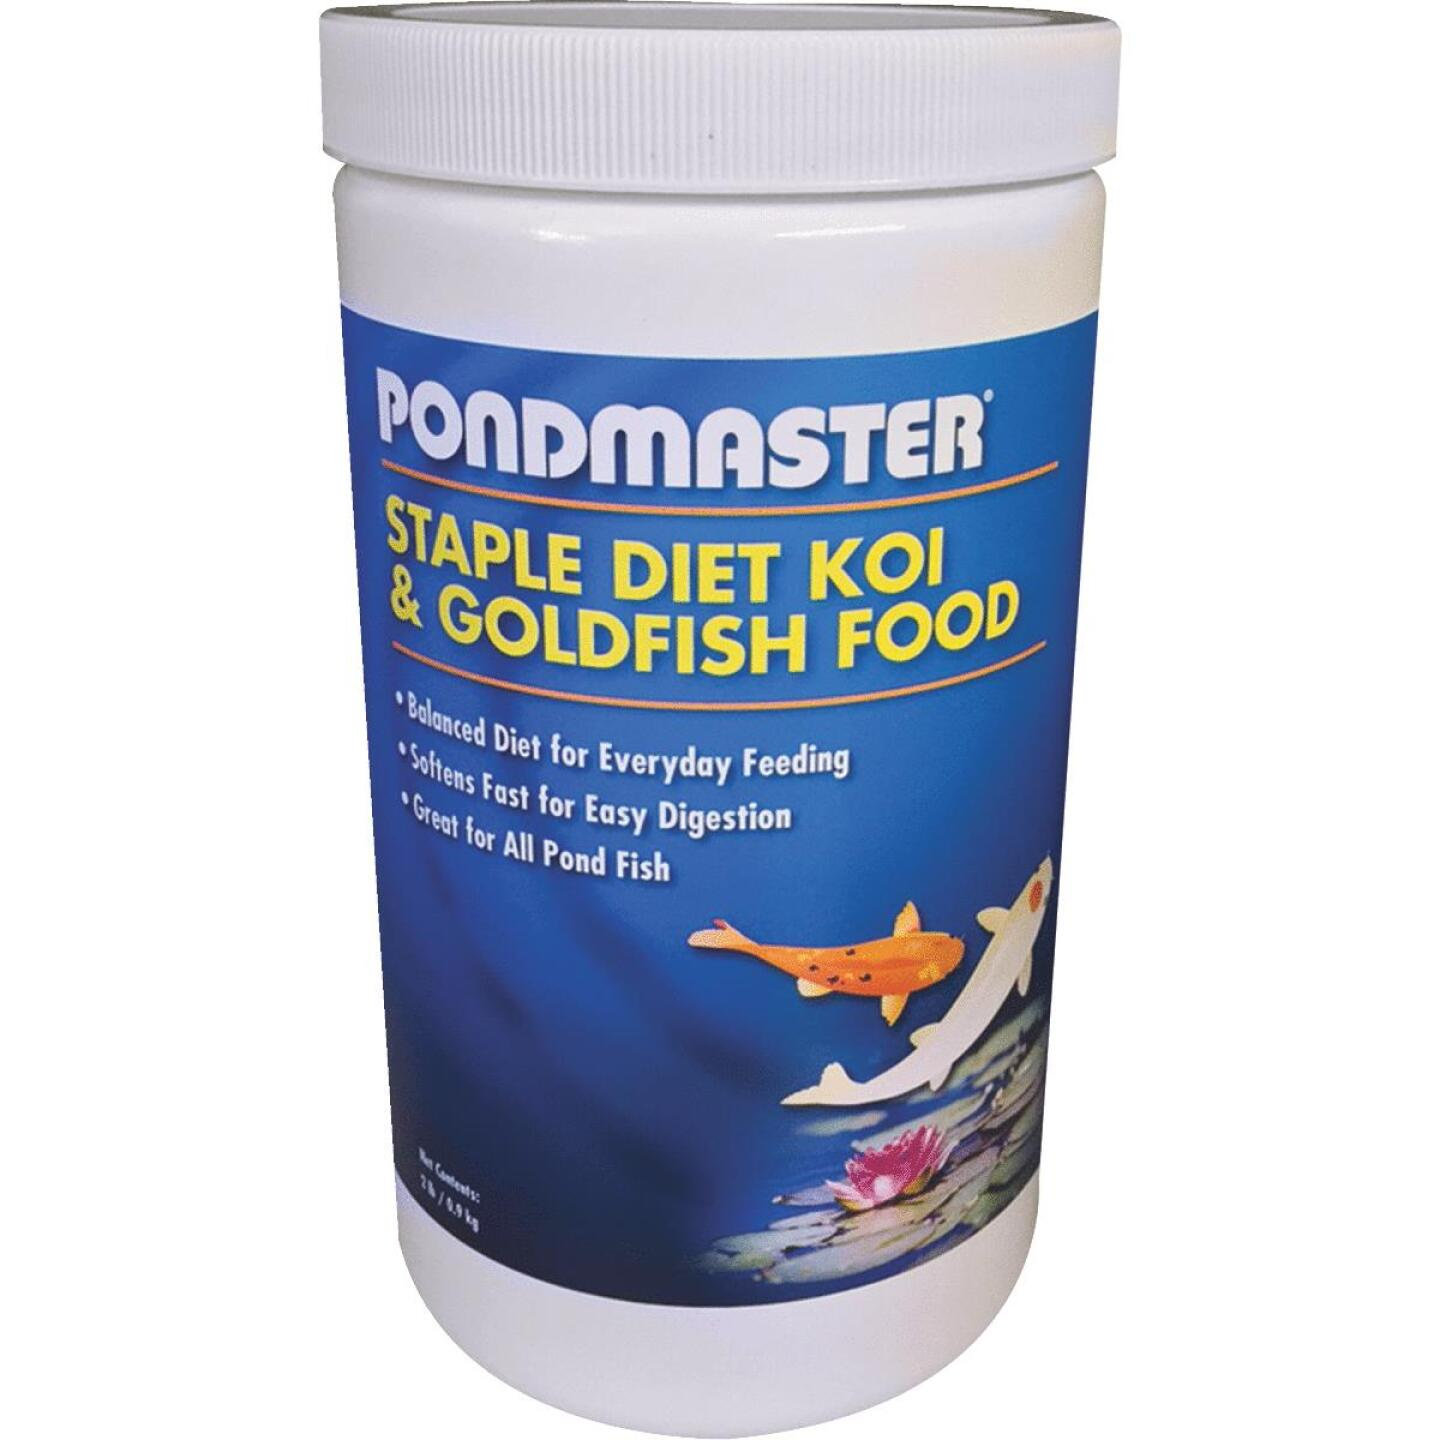 PondMaster 2 Lb. Staple Diet Koi & Goldfish Pond Fish Food Image 1